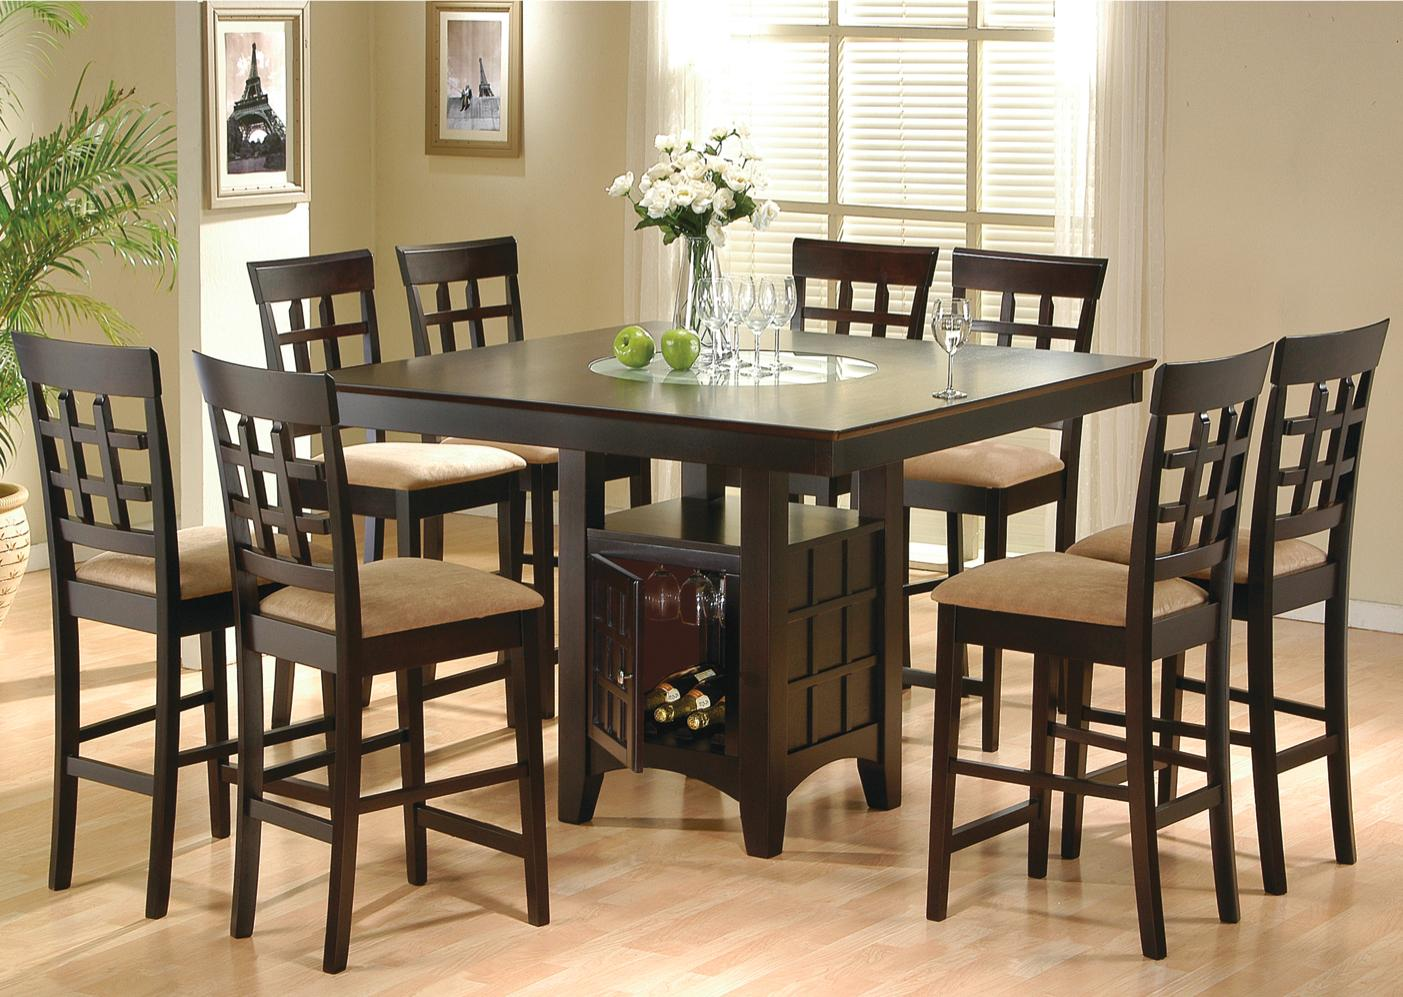 Coaster Mix Match 100438 S9 9 Piece Counter Height Dining Set Northeast Factory Direct Pub Table And Stool Sets